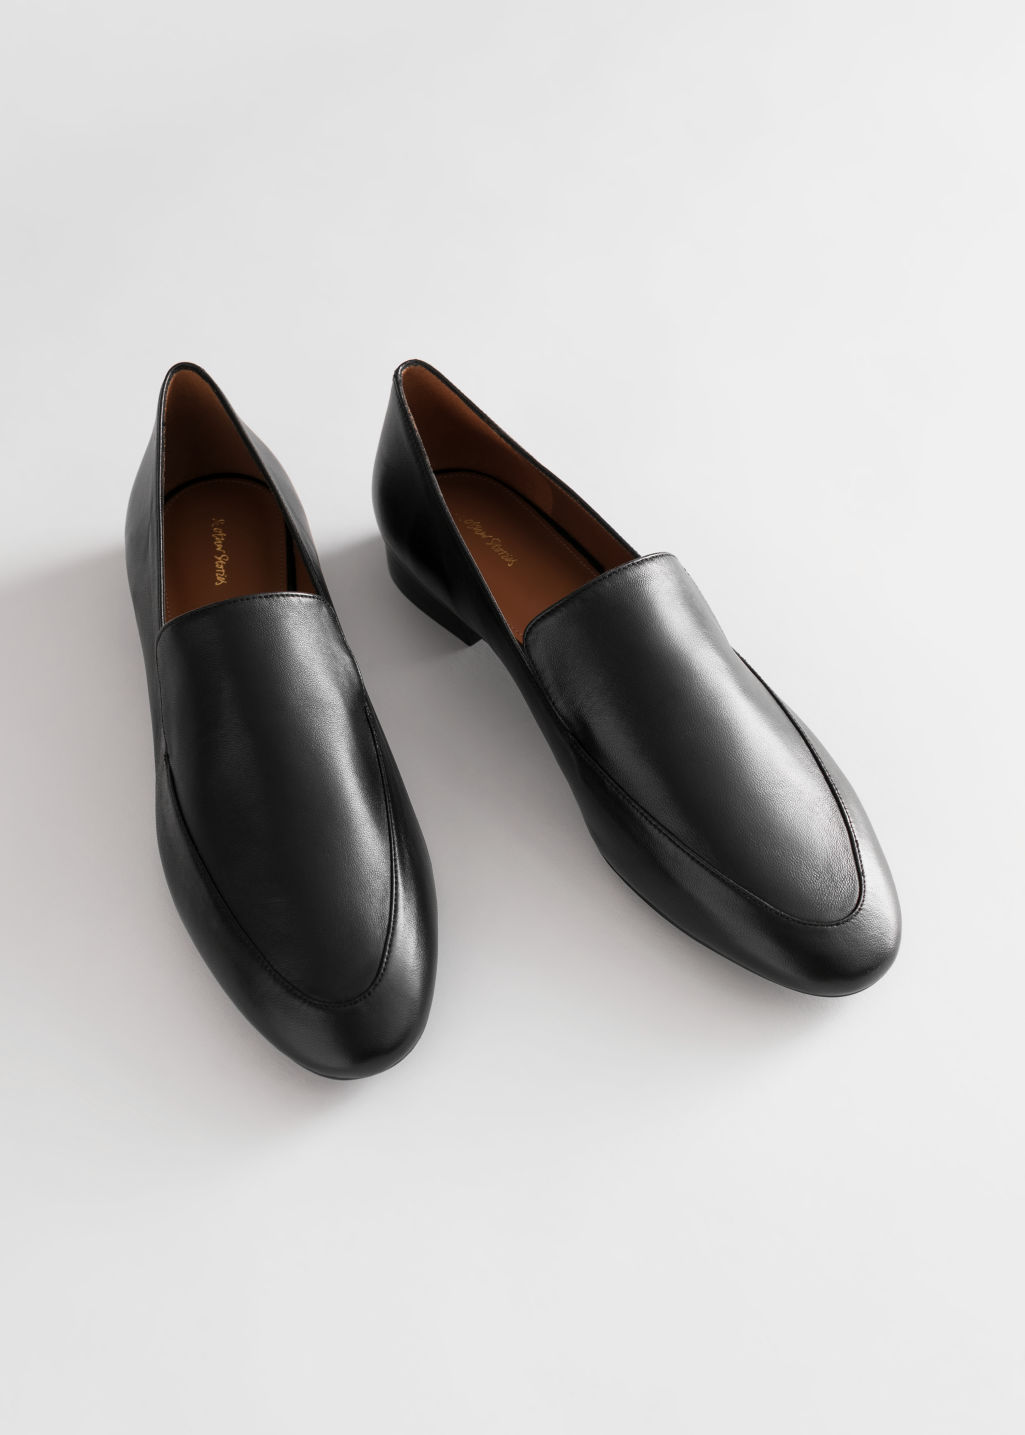 StillLife Top Image of Stories Smooth Leather Classic Loafers in Black